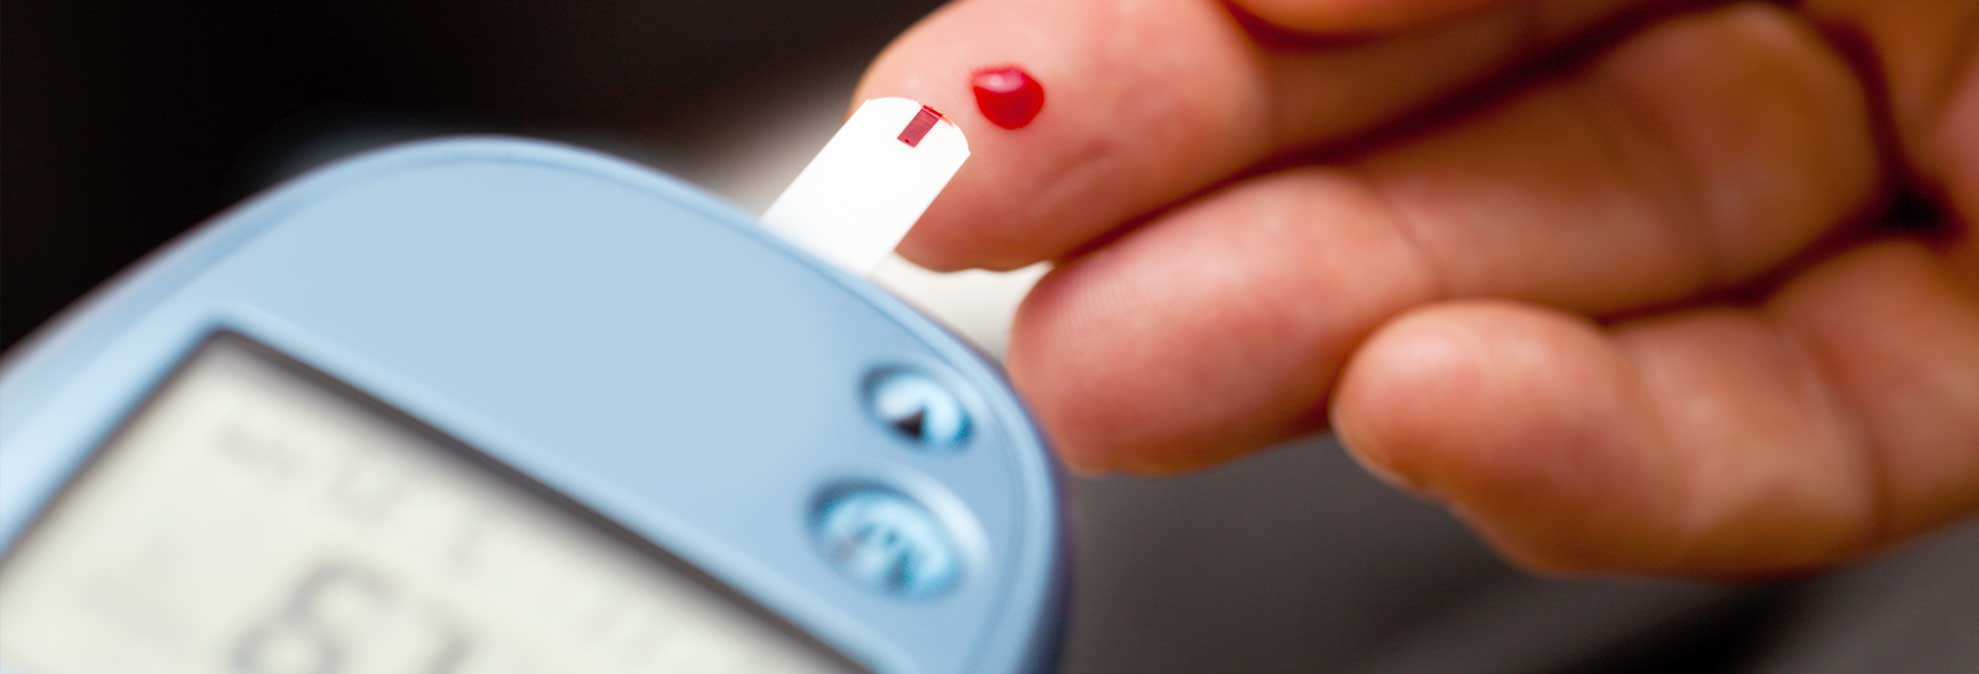 Ratings On Mattresses >> Best Blood Glucose Meter Buying Guide - Consumer Reports